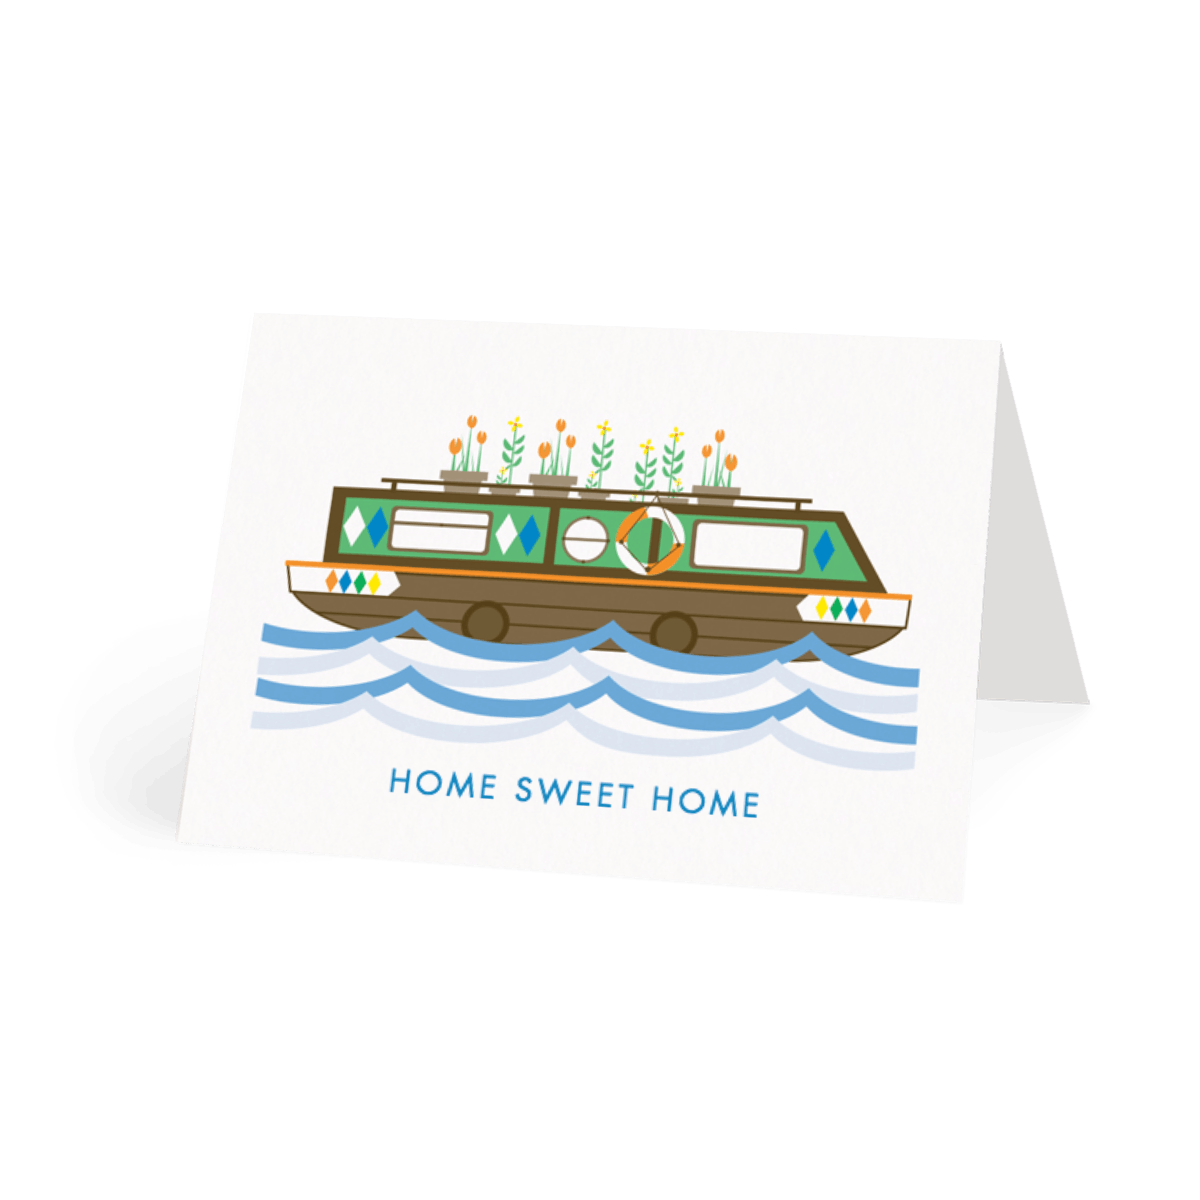 Https%3a%2f%2fwww.papier.com%2fproduct image%2f2872%2f14%2fhouseboat 728 front 1453910524.png?ixlib=rb 1.1